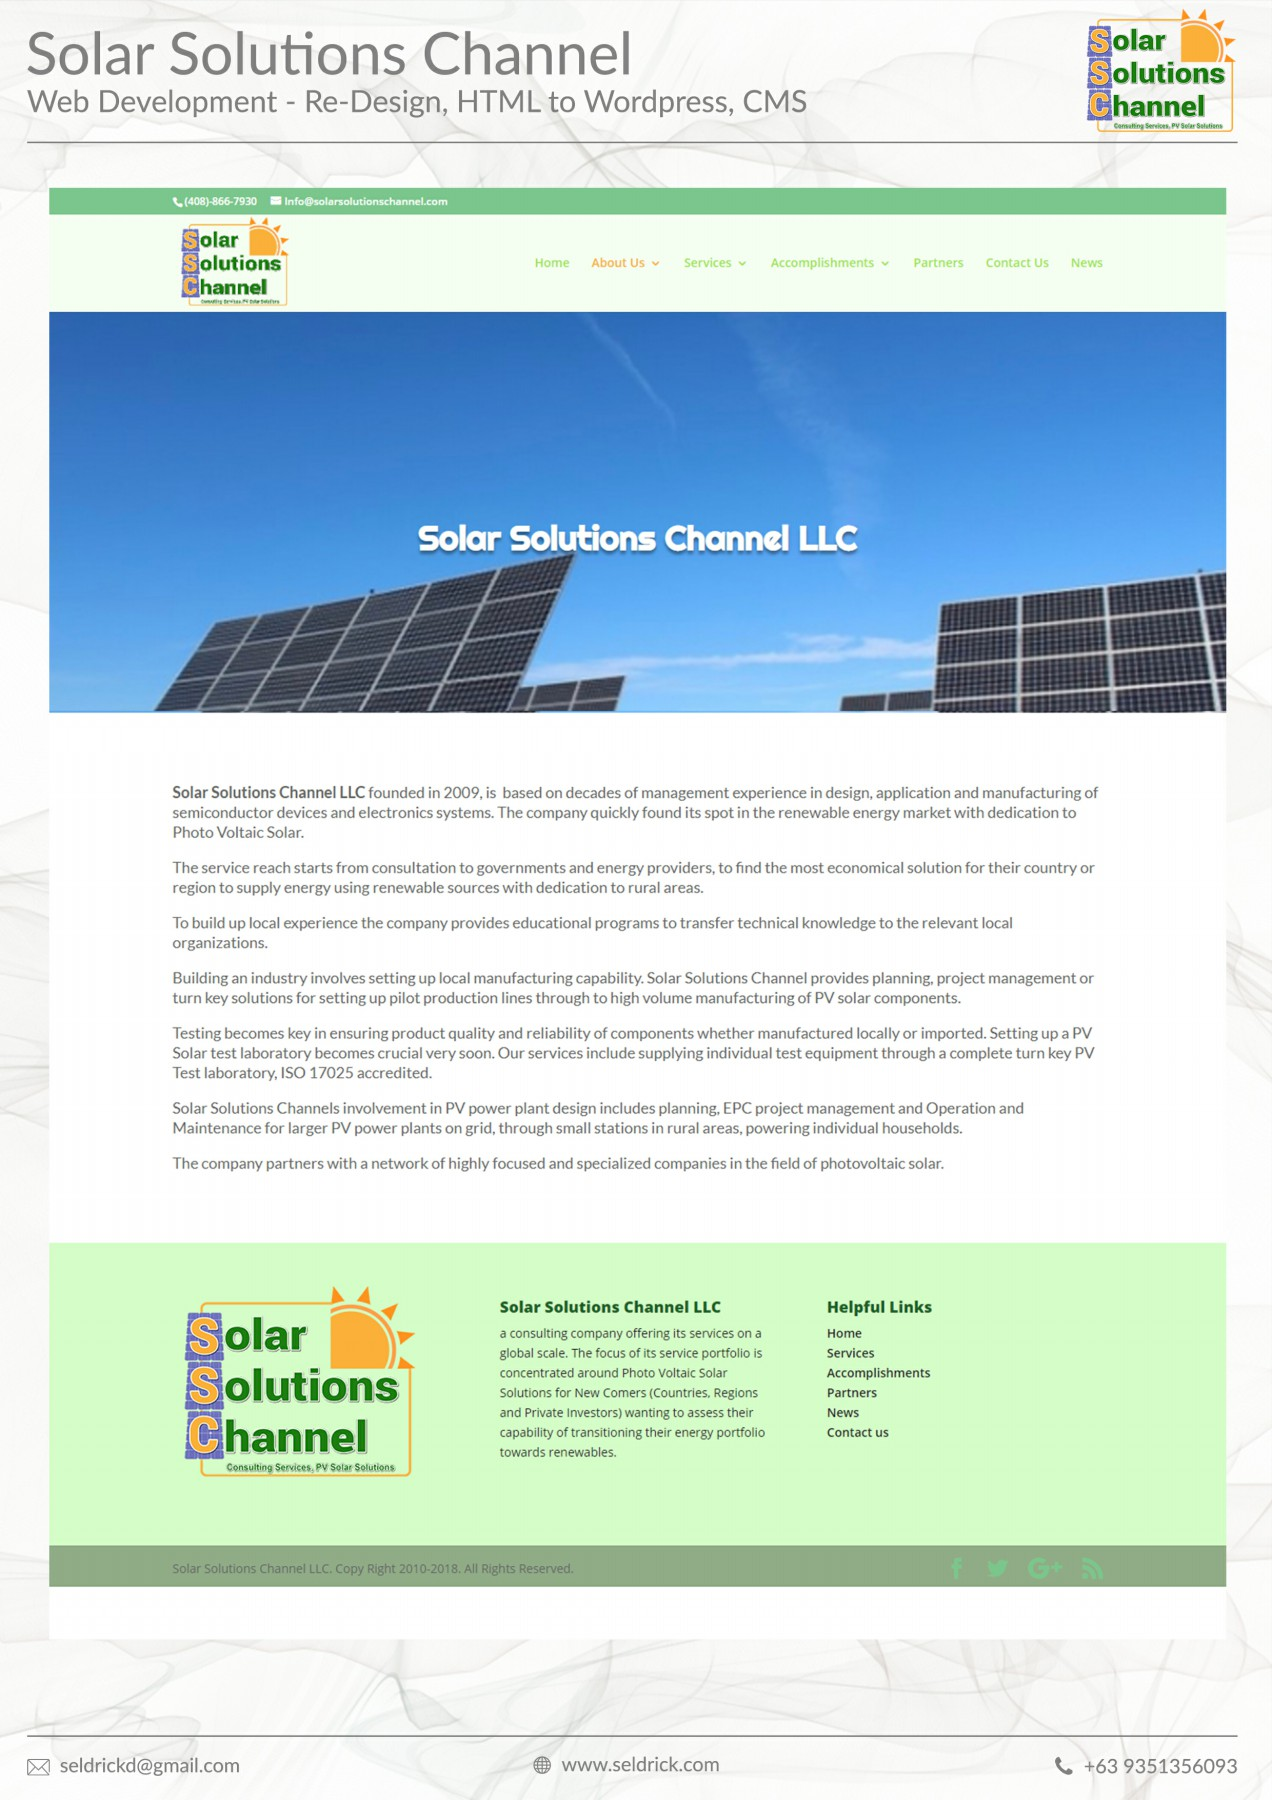 Small-ssc-website-page-5